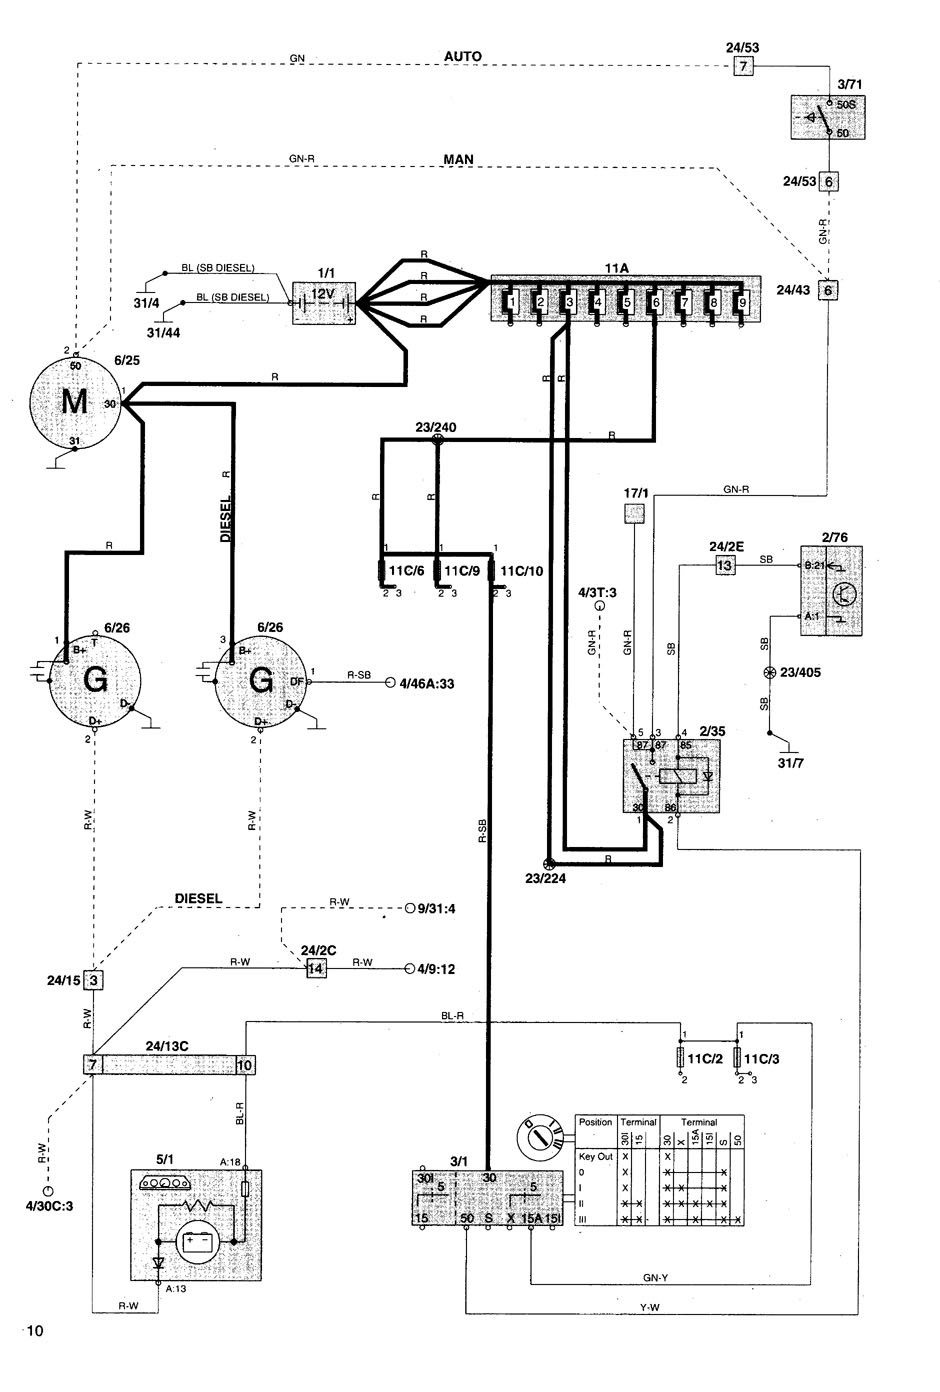 Volvo S80 Wiring Diagram - 7.cotsamzp.timmarshall.info • on 2001 pontiac grand am wiring diagram, 1999 jeep grand cherokee wiring diagram, 2006 volvo xc90 wiring diagram, 2007 volvo xc70 wiring diagram, 2004 volvo s80 spark plugs, 2004 volvo s80 coil diagram, 1998 oldsmobile intrigue wiring diagram, 1995 volvo 850 wiring diagram, 2000 pontiac grand am wiring diagram, 2004 volvo s80 hose, 2006 chrysler pt cruiser wiring diagram, 2004 volvo s80 radio, 2000 volvo s80 wiring diagram, 2001 volkswagen jetta wiring diagram, 2004 volvo s80 headlight, 2005 chevrolet malibu wiring diagram, 1995 volvo 960 wiring diagram, 2003 nissan sentra wiring diagram, 1999 pontiac grand am wiring diagram, 2004 volvo s80 exhaust system diagram,